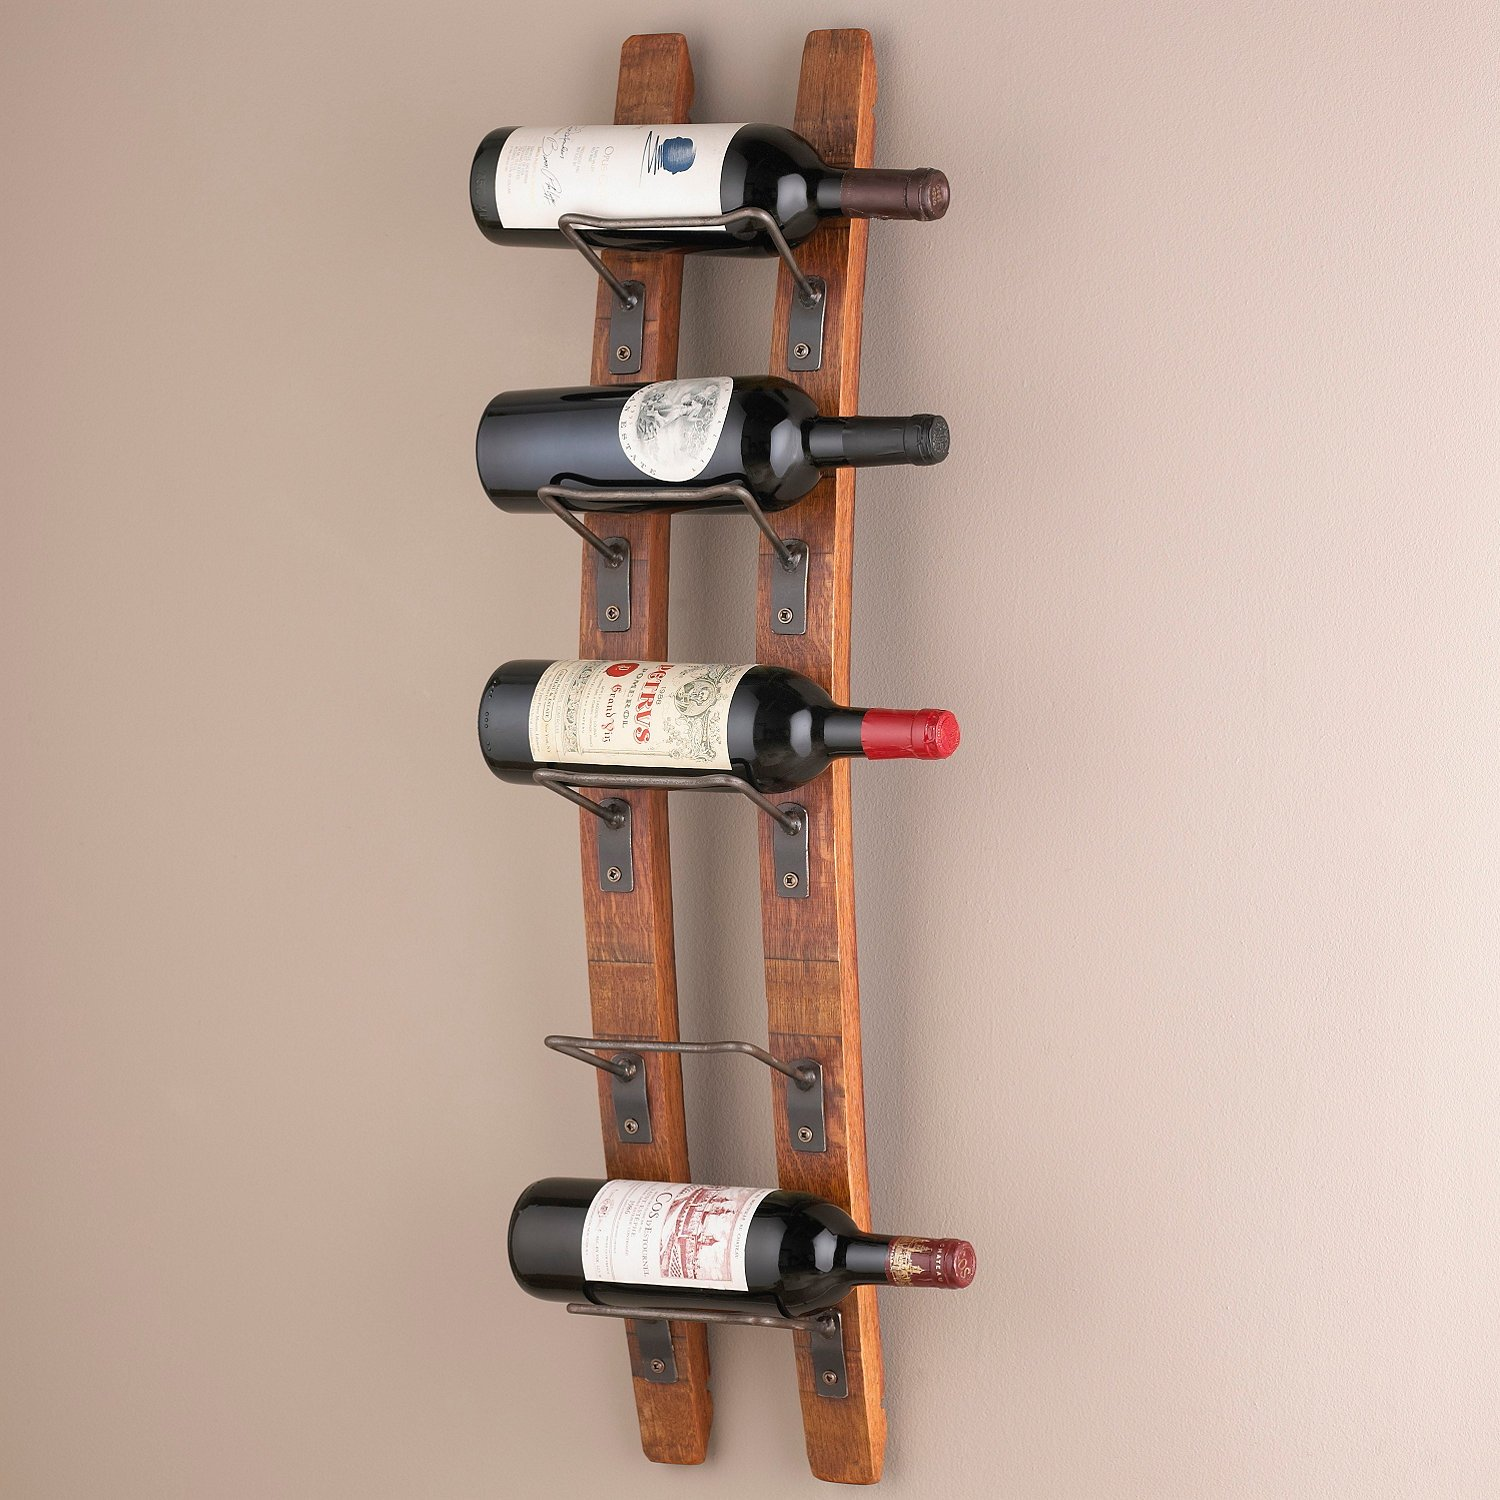 Shop Amazon Wall Mounted Wine Racks